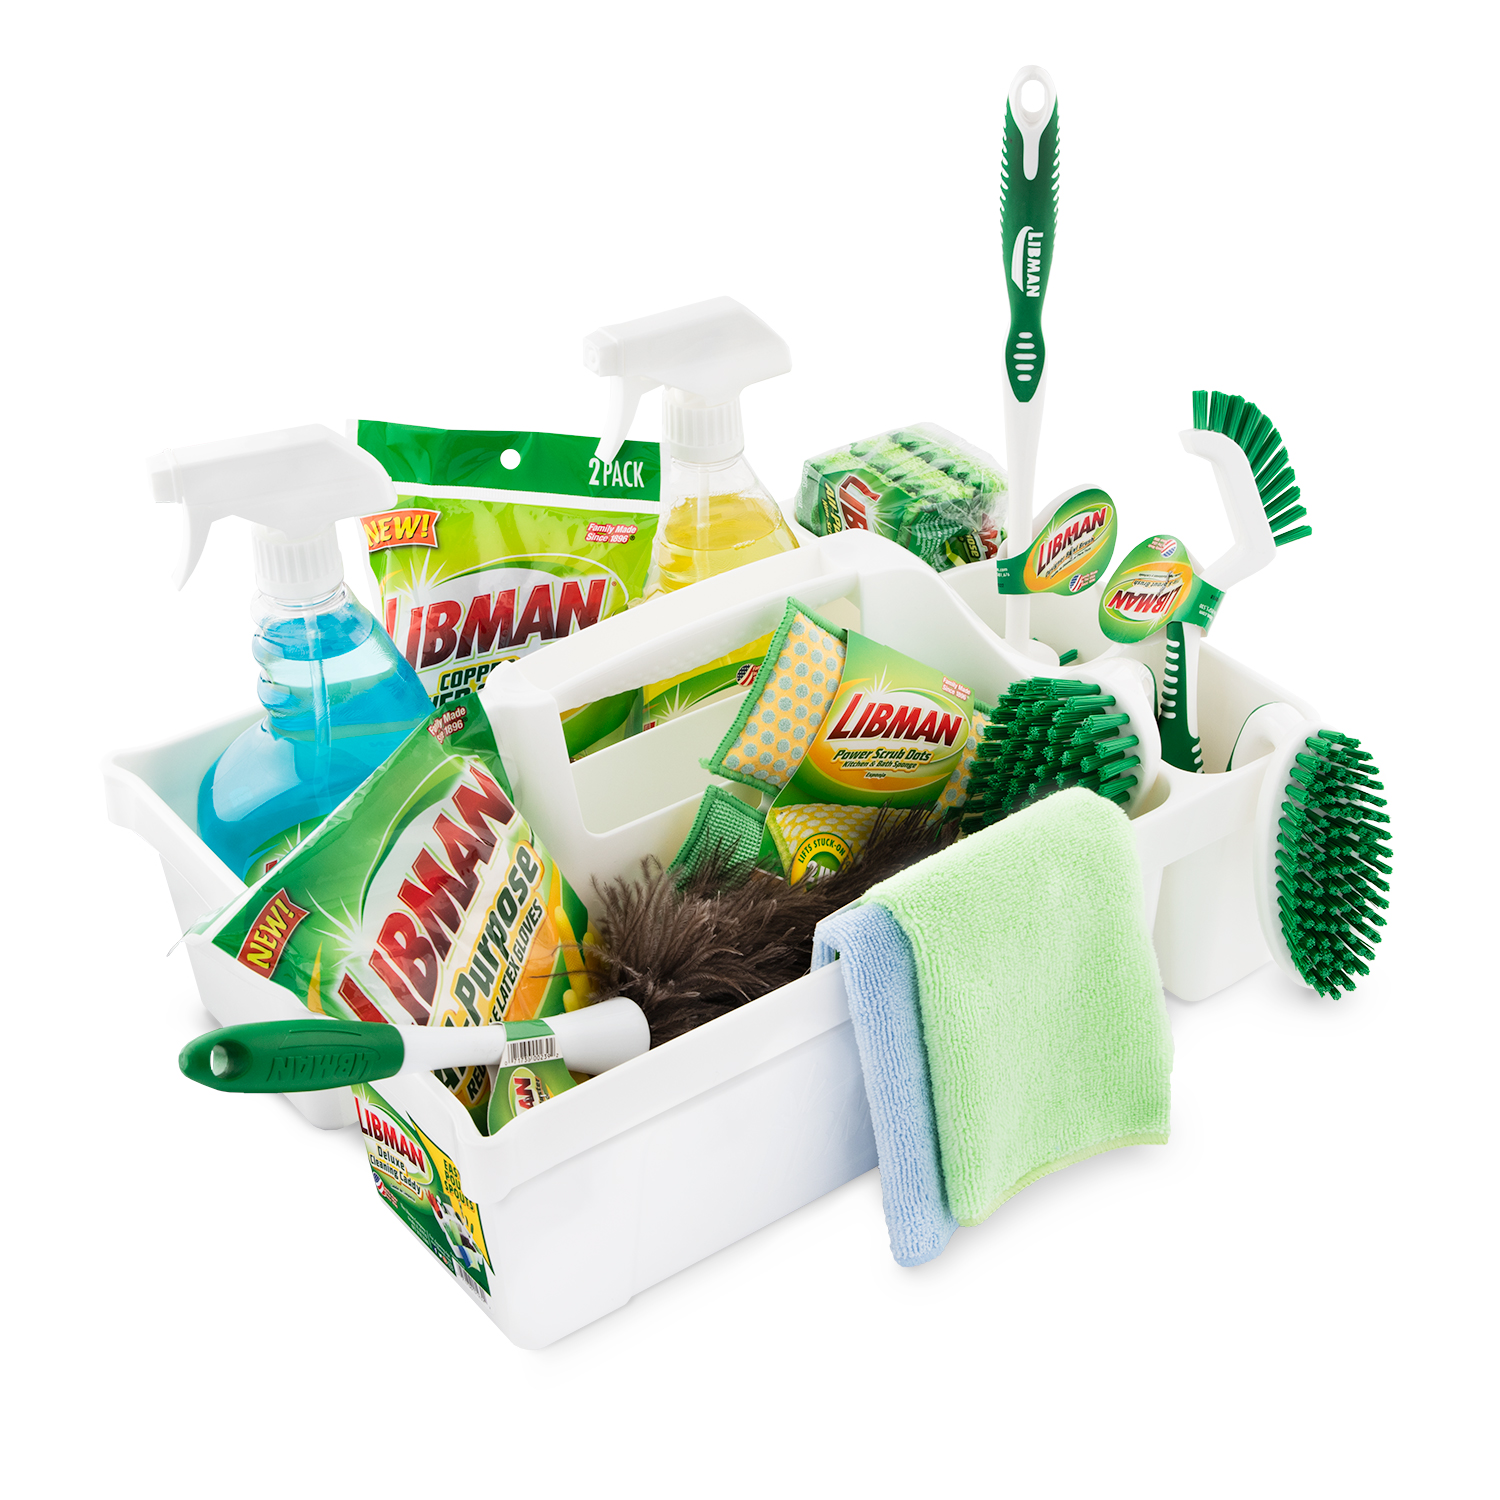 The Libman Comapny Maid Caddy